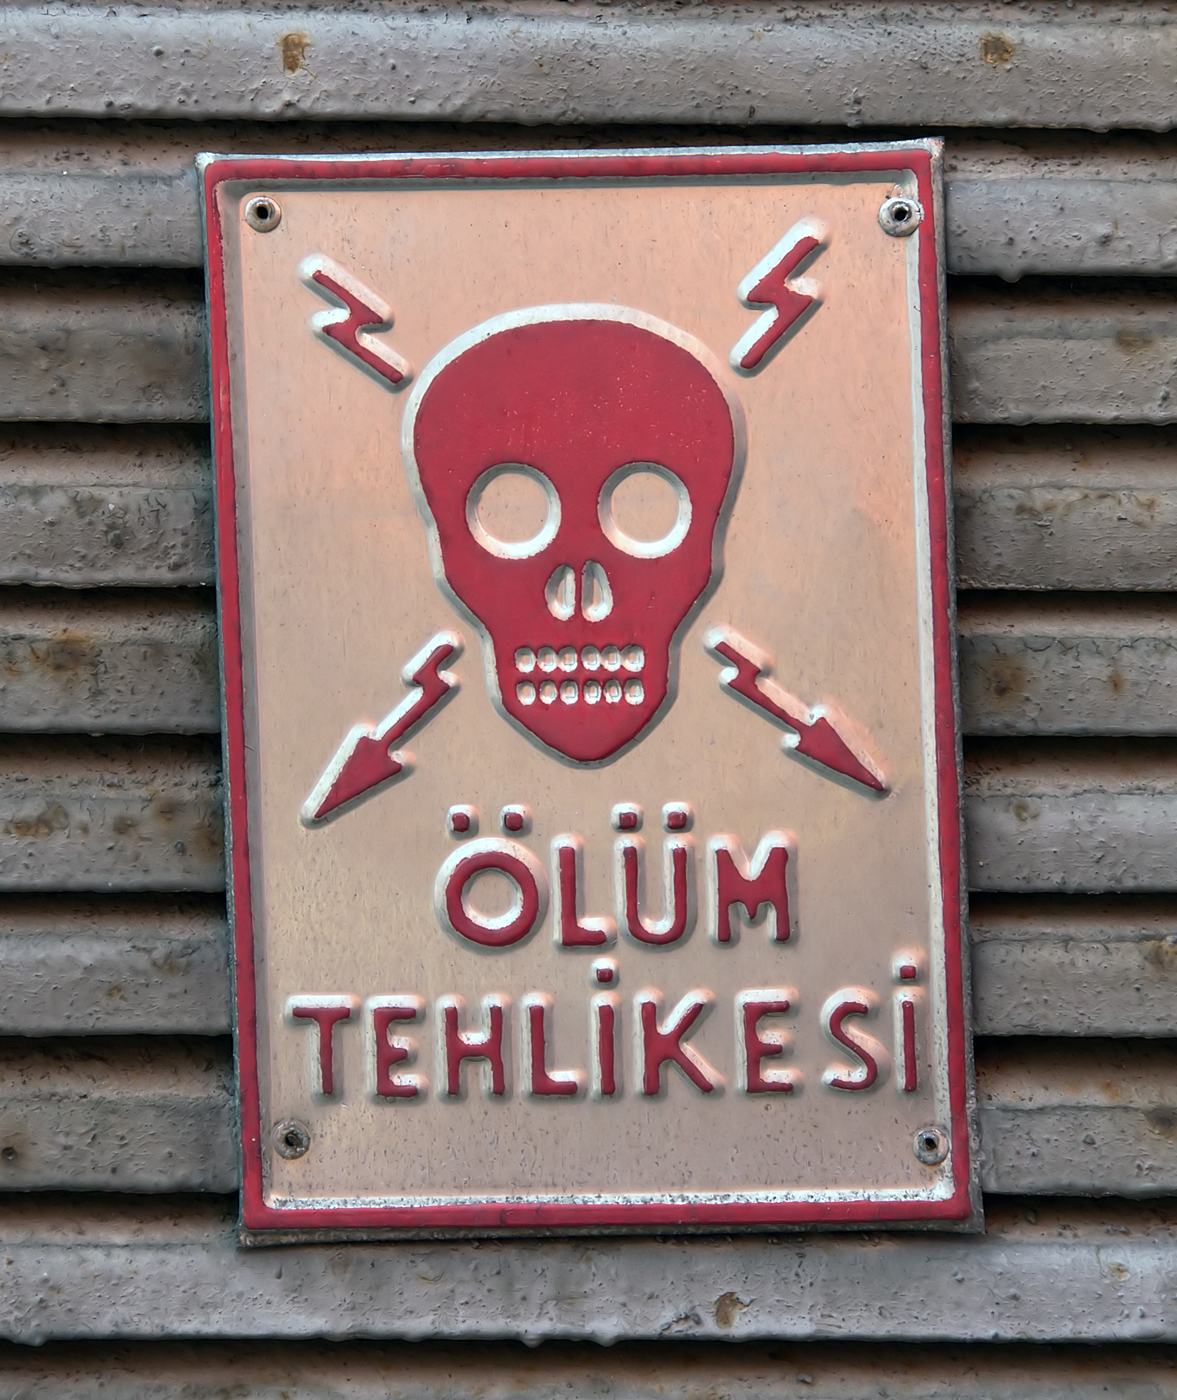 Stern metal sign featuring a skull and crossbones composed of electricity, German wording underneath, photo by Tuncay Demir